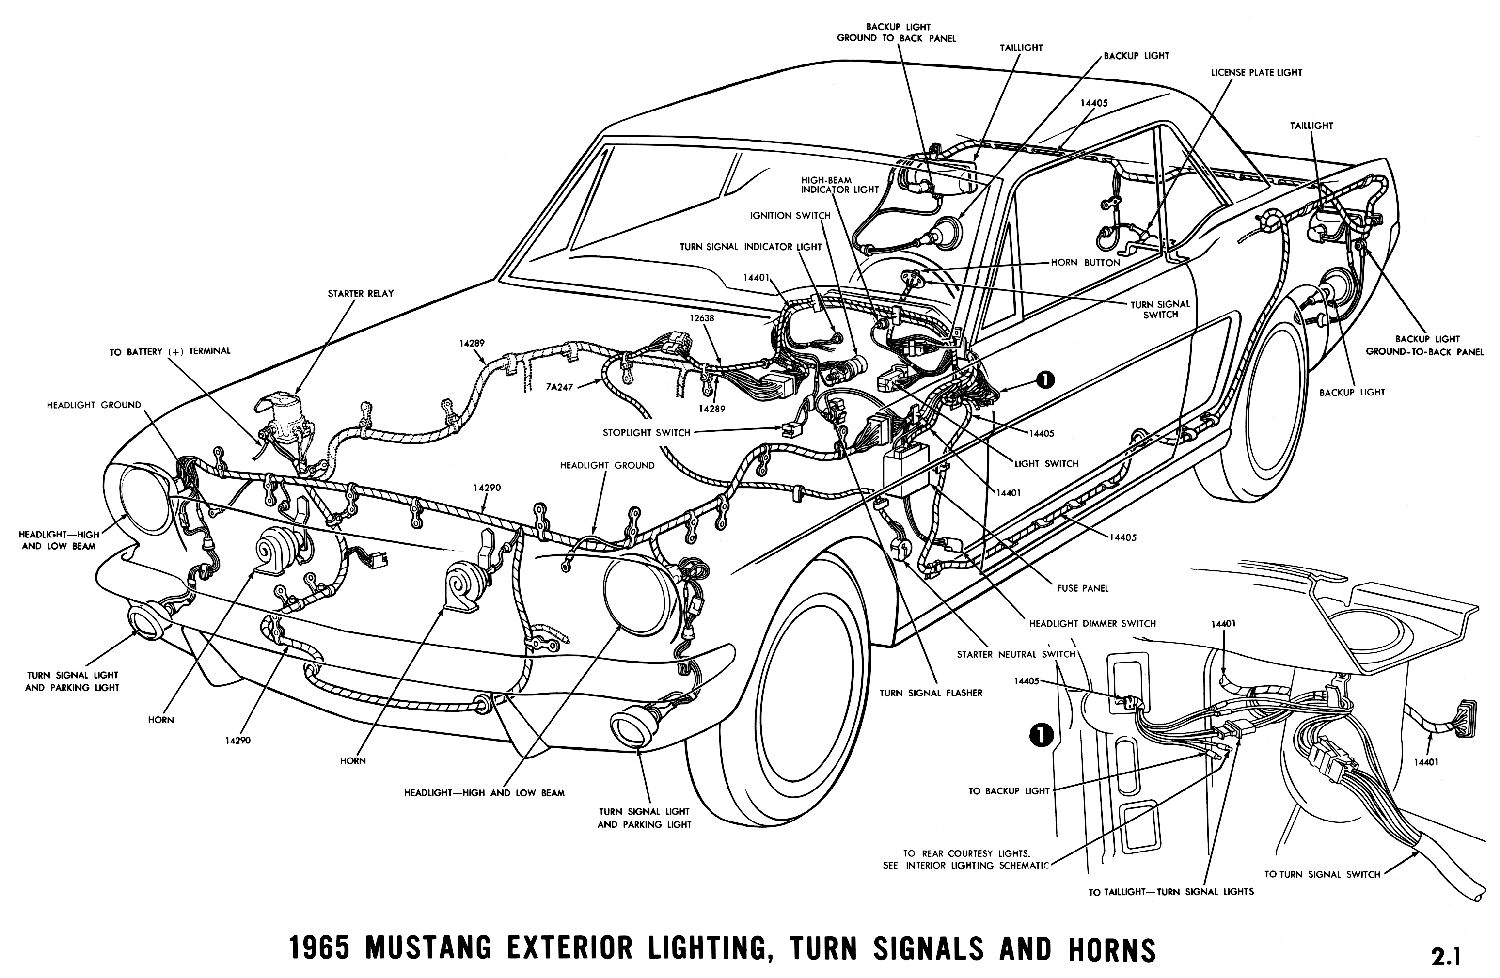 Diagram 1965 Mustang Wiring Diagrams FULL HD Version Wiring Diagrams - LIST- DIAGRAM.CENTROTEATROTN.ITDiagram Database And Images - centroteatrotn.it